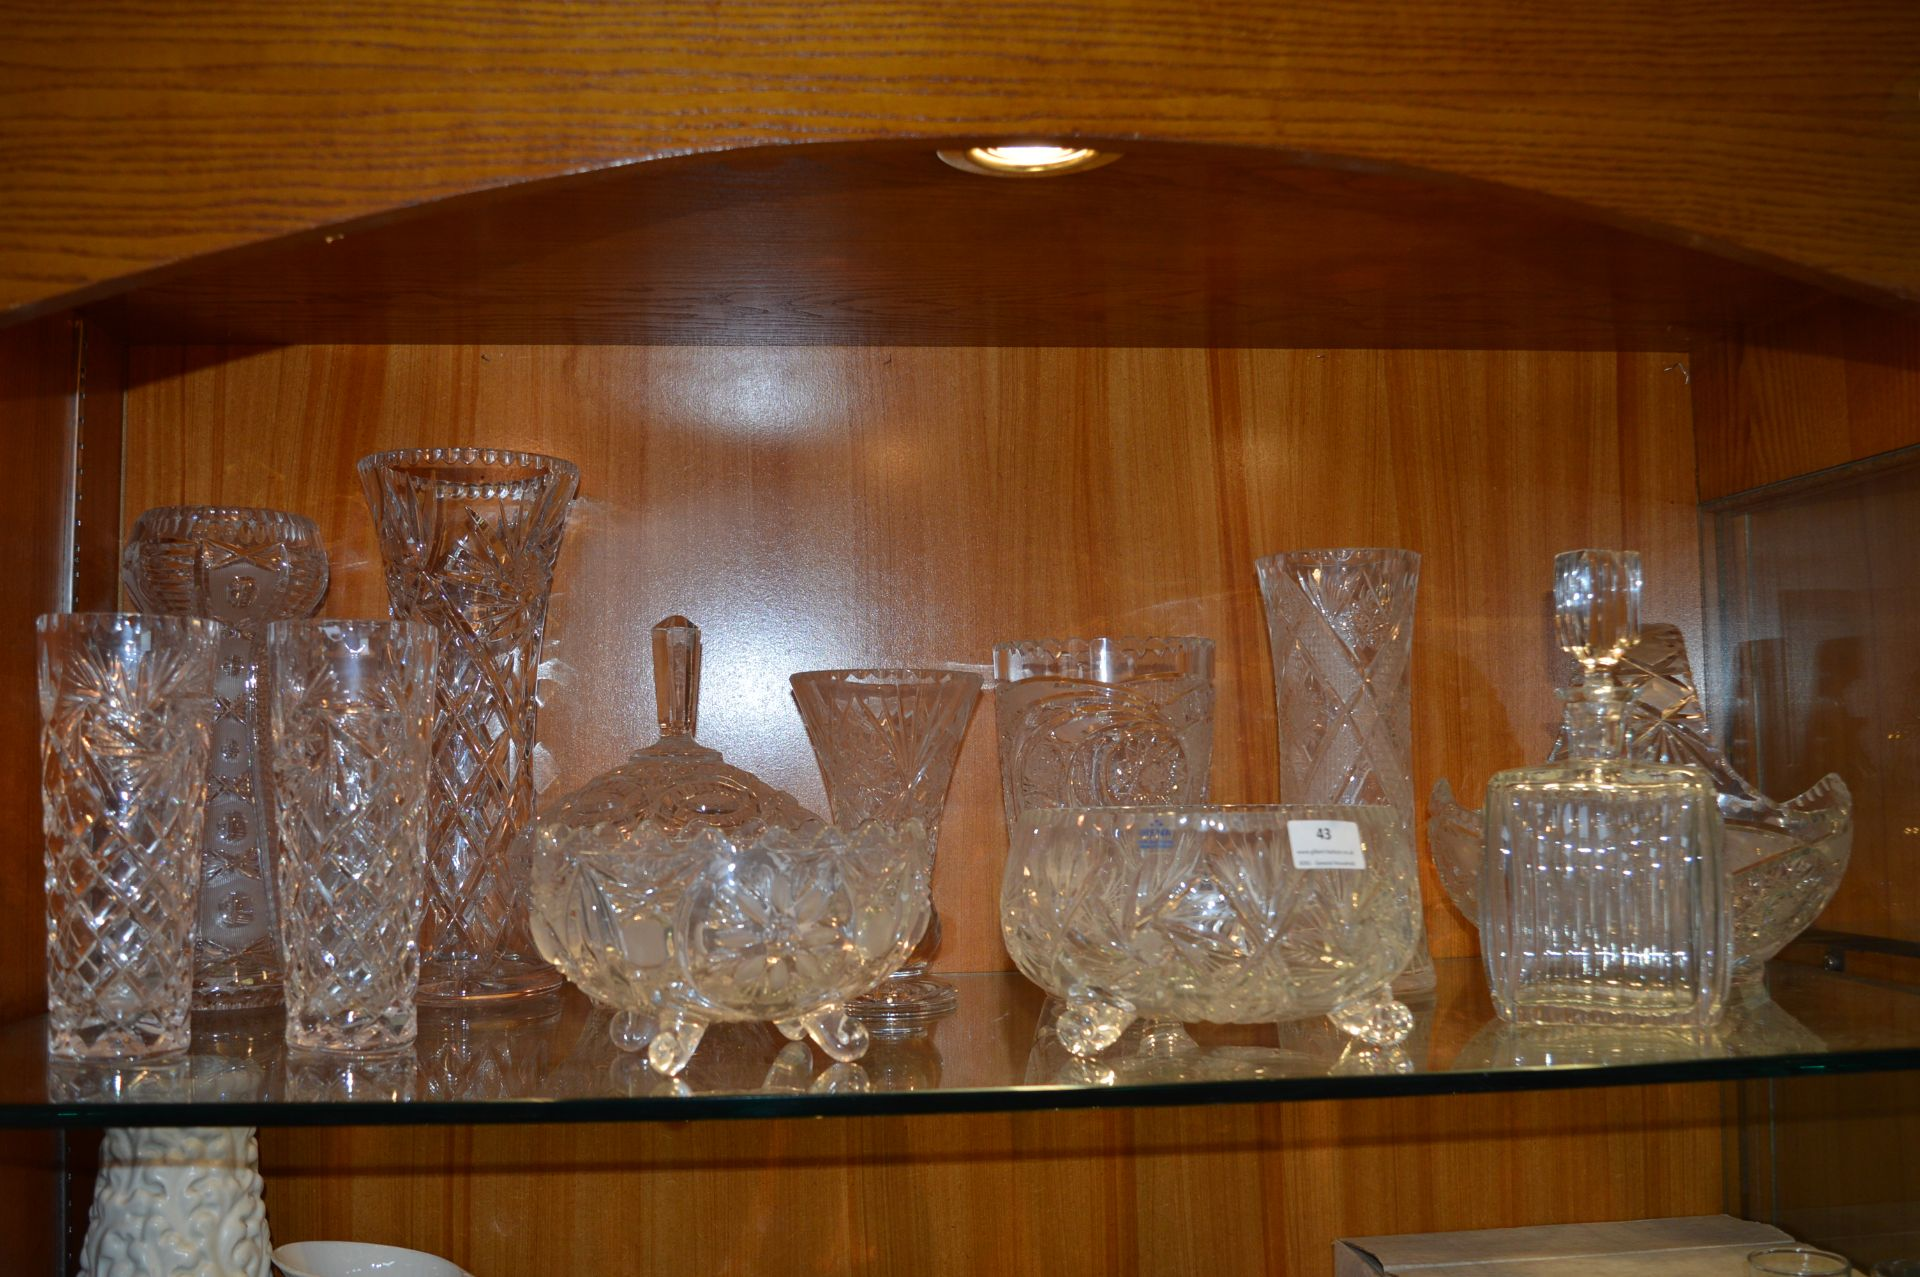 Lot 43 - Twelve Pieces of Cut Glass Including Vases, Bowls,